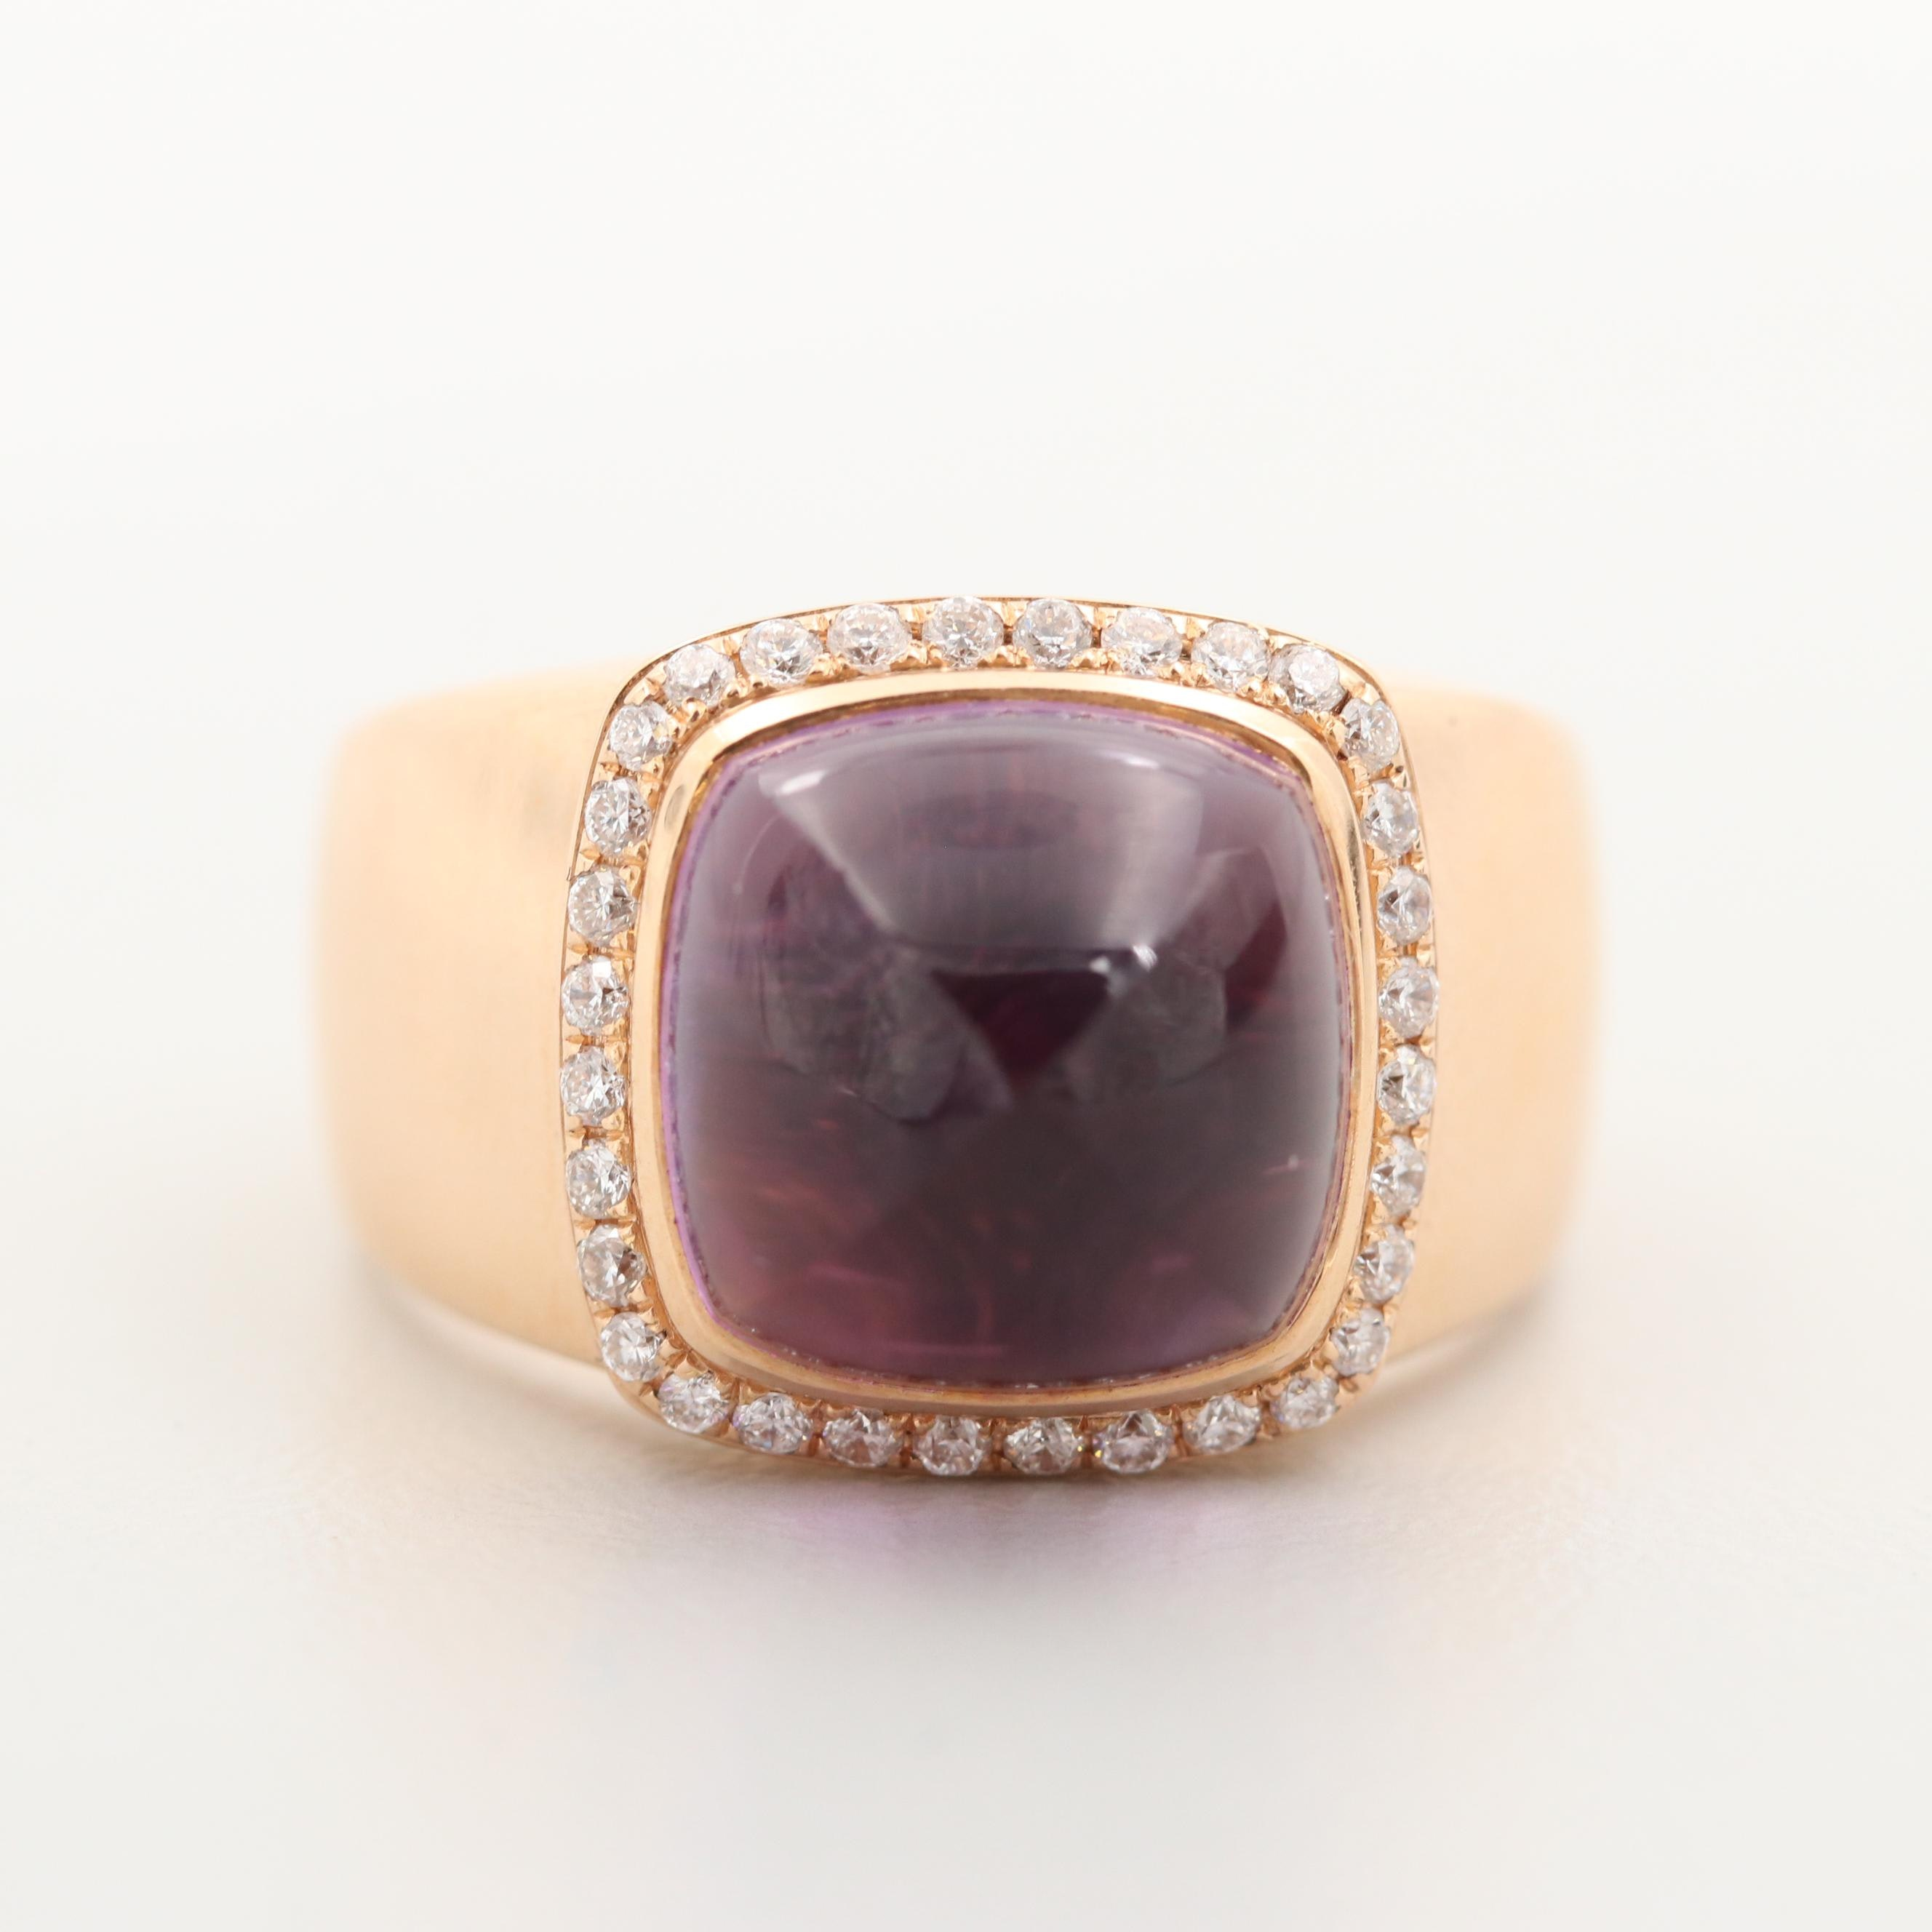 Fred of Paris 18K Rose Gold Amethyst and Diamond Ring with Box